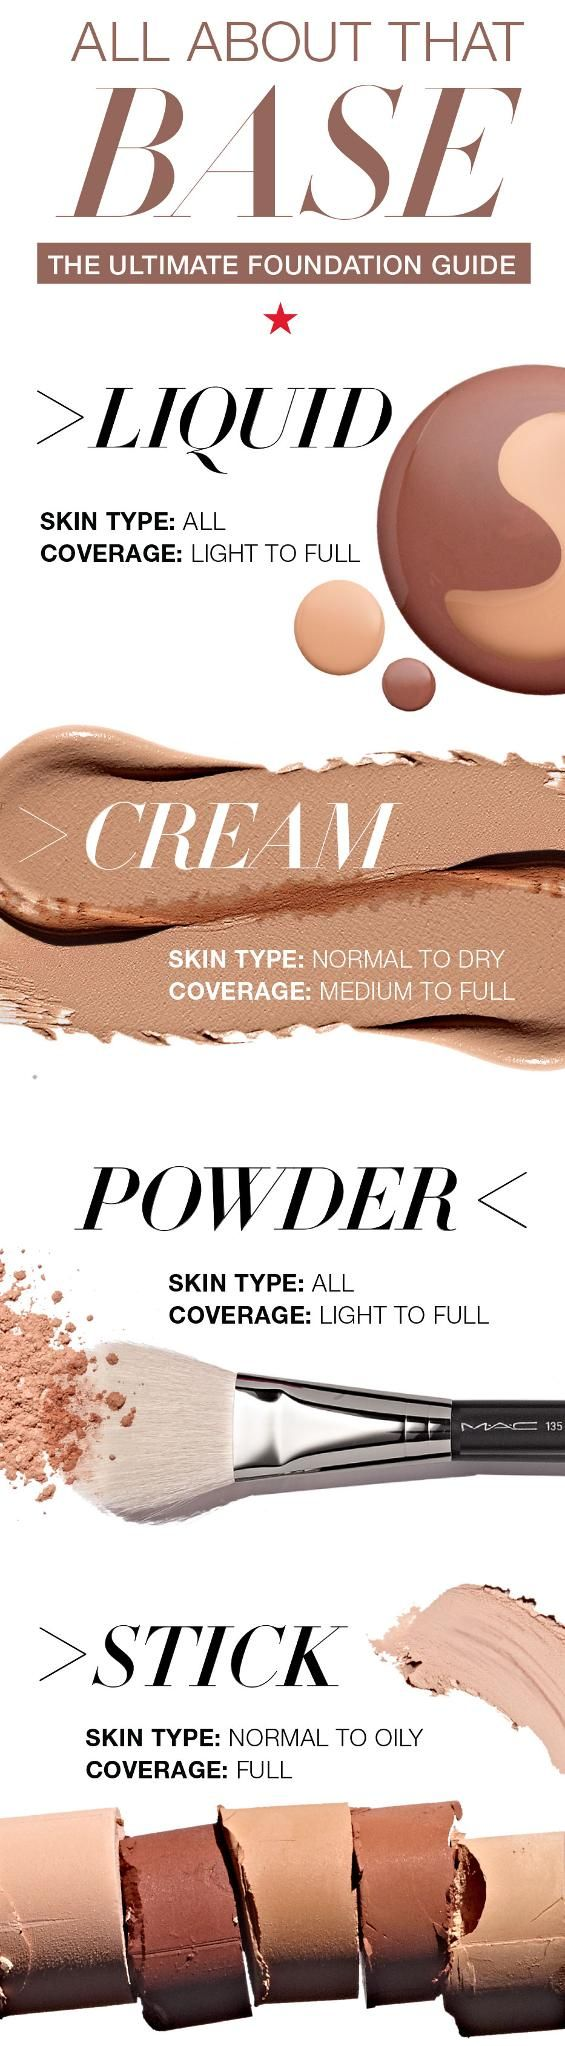 Searching for the perfect foundation? Click to shop your favorite beauty brands at Macy's. But first, find out whether liquid, cream, powder or stick is the best fit for you. Choose your favorite formula based on your skin type and preferred level of coverage. You're already on your way to your best makeup look ever!